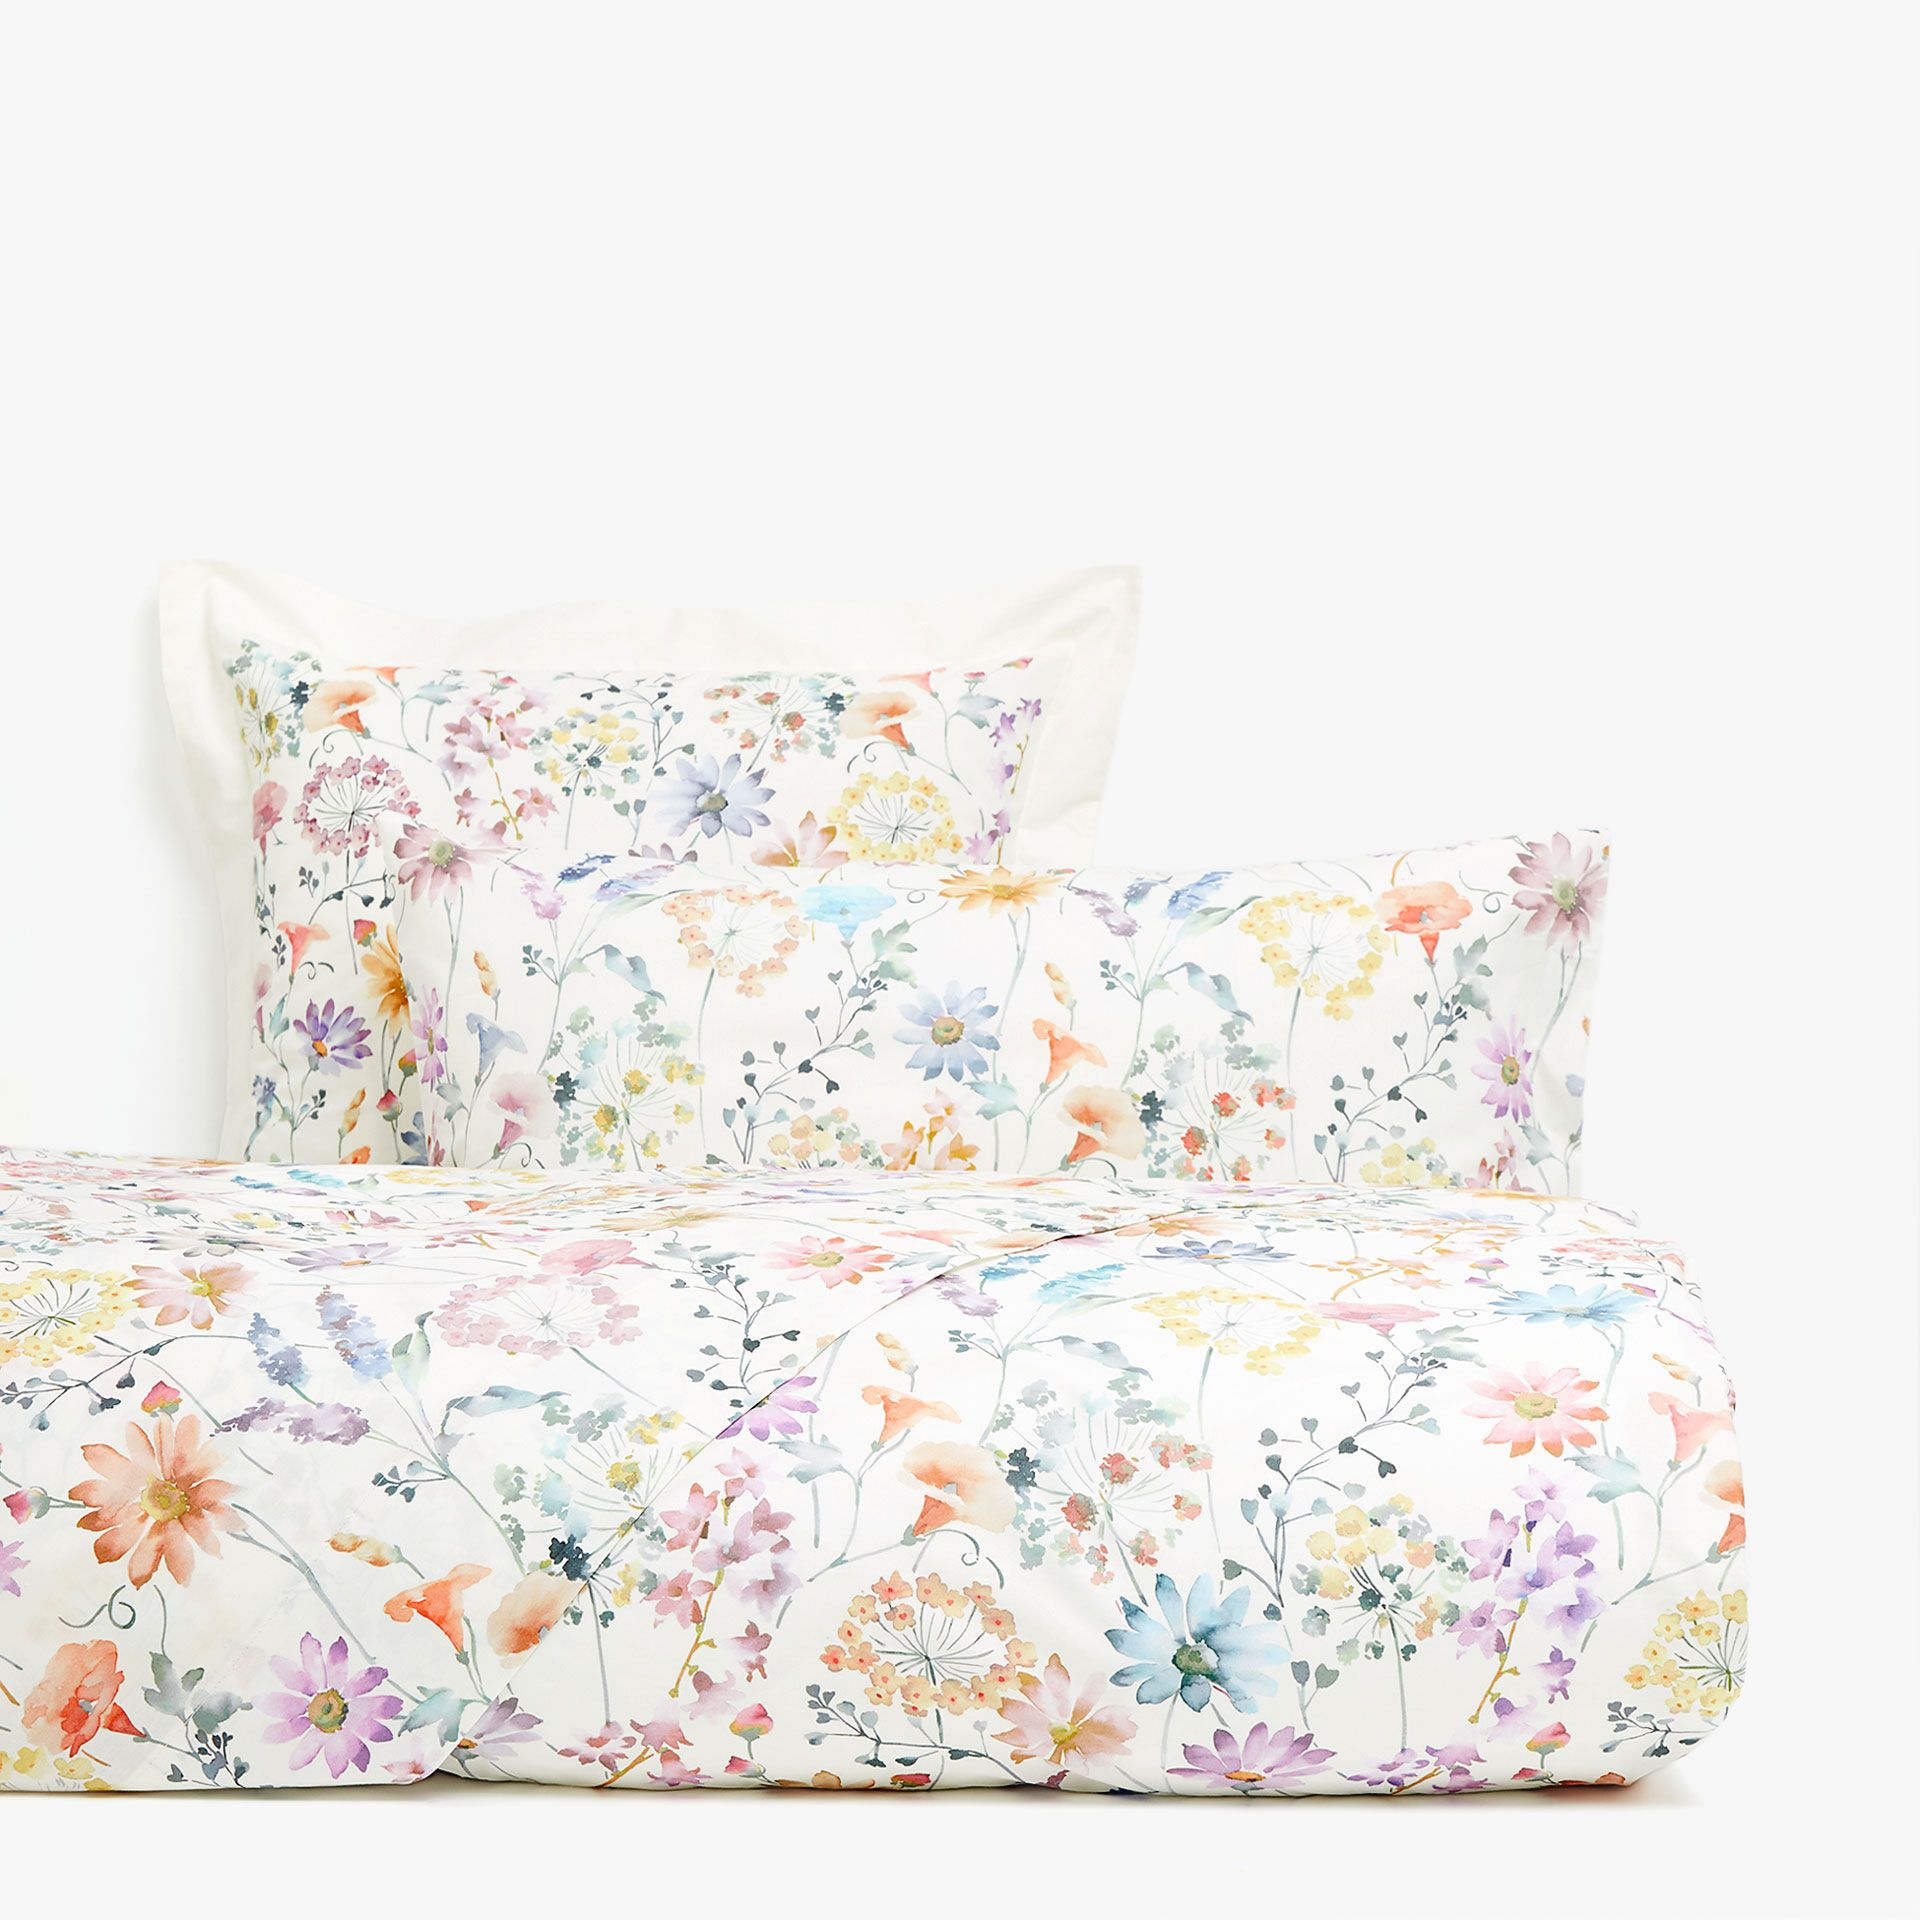 Watercolour floral print duvet cover Duvet covers floral